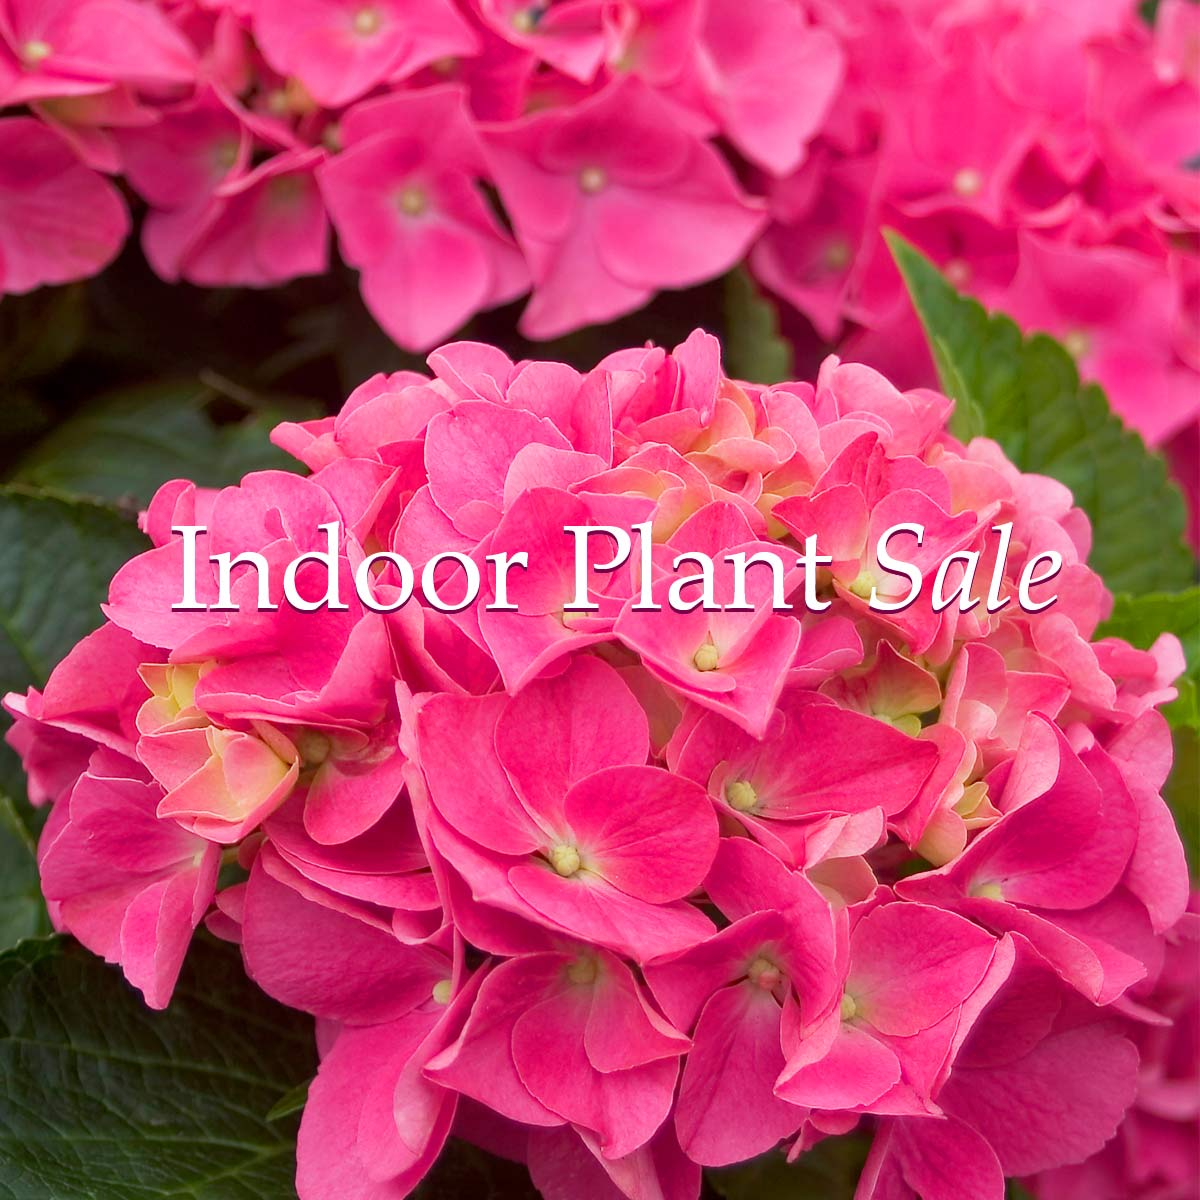 Indoor Plant Sale